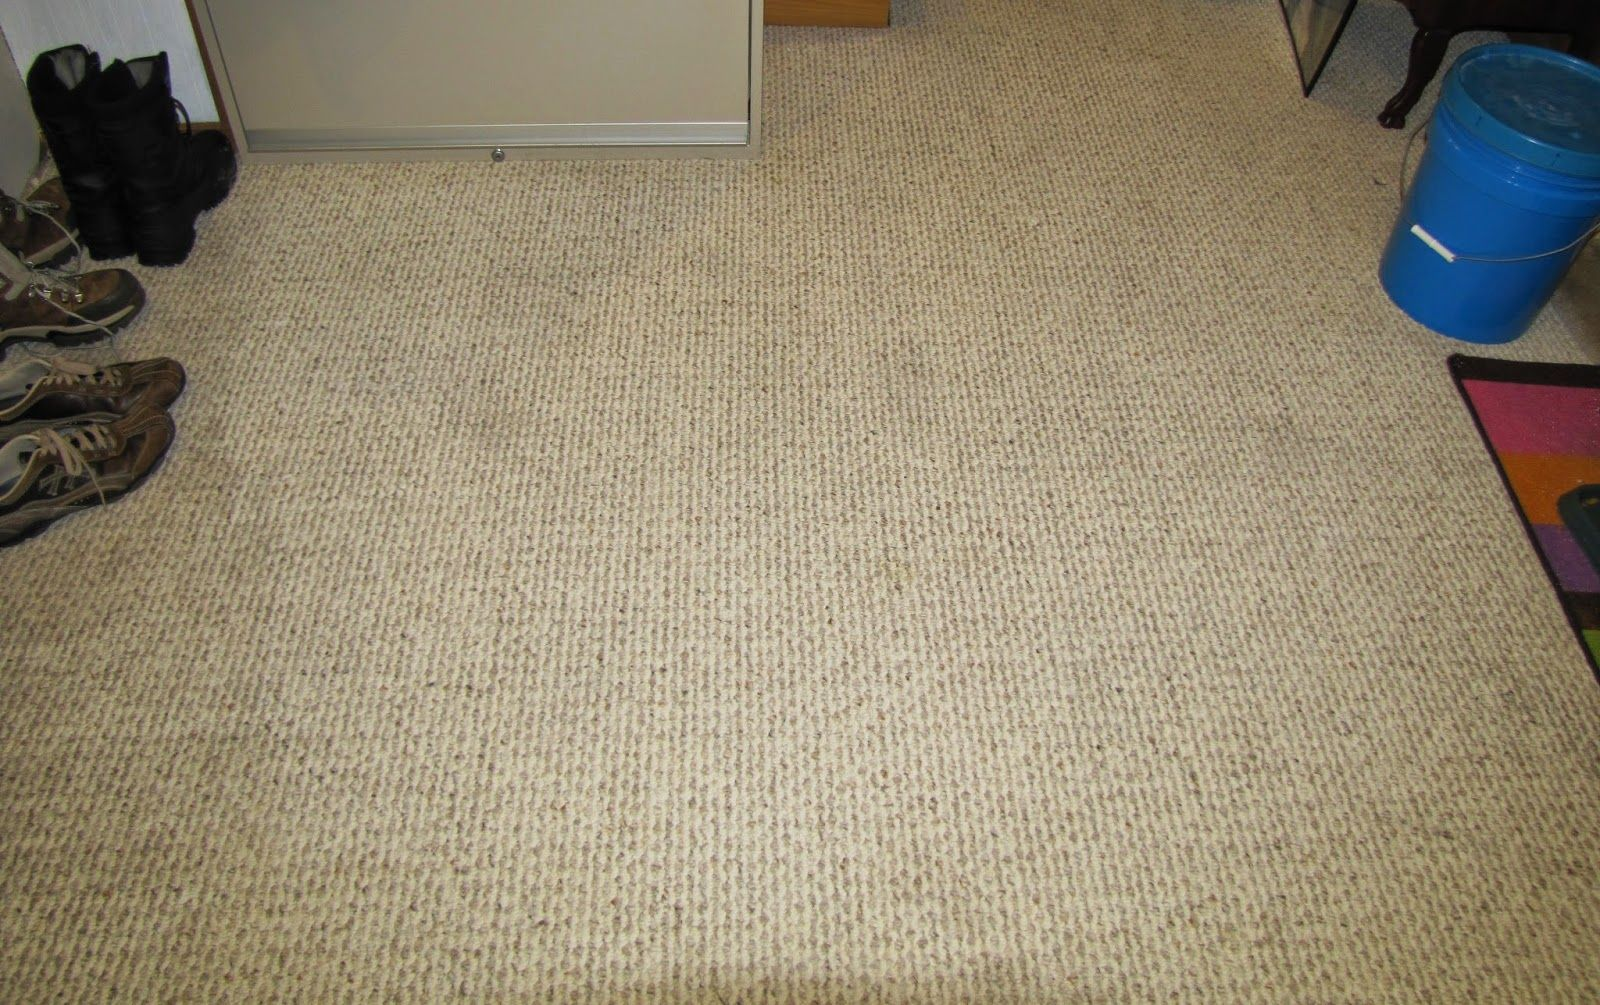 How To Clean Pet Stained Carpet How To Remove Pet Stains From Carpet Carpet Cleaning Pet S Carpet Cleaning Hacks Carpet Cleaning Pet Stains How To Clean Carpet